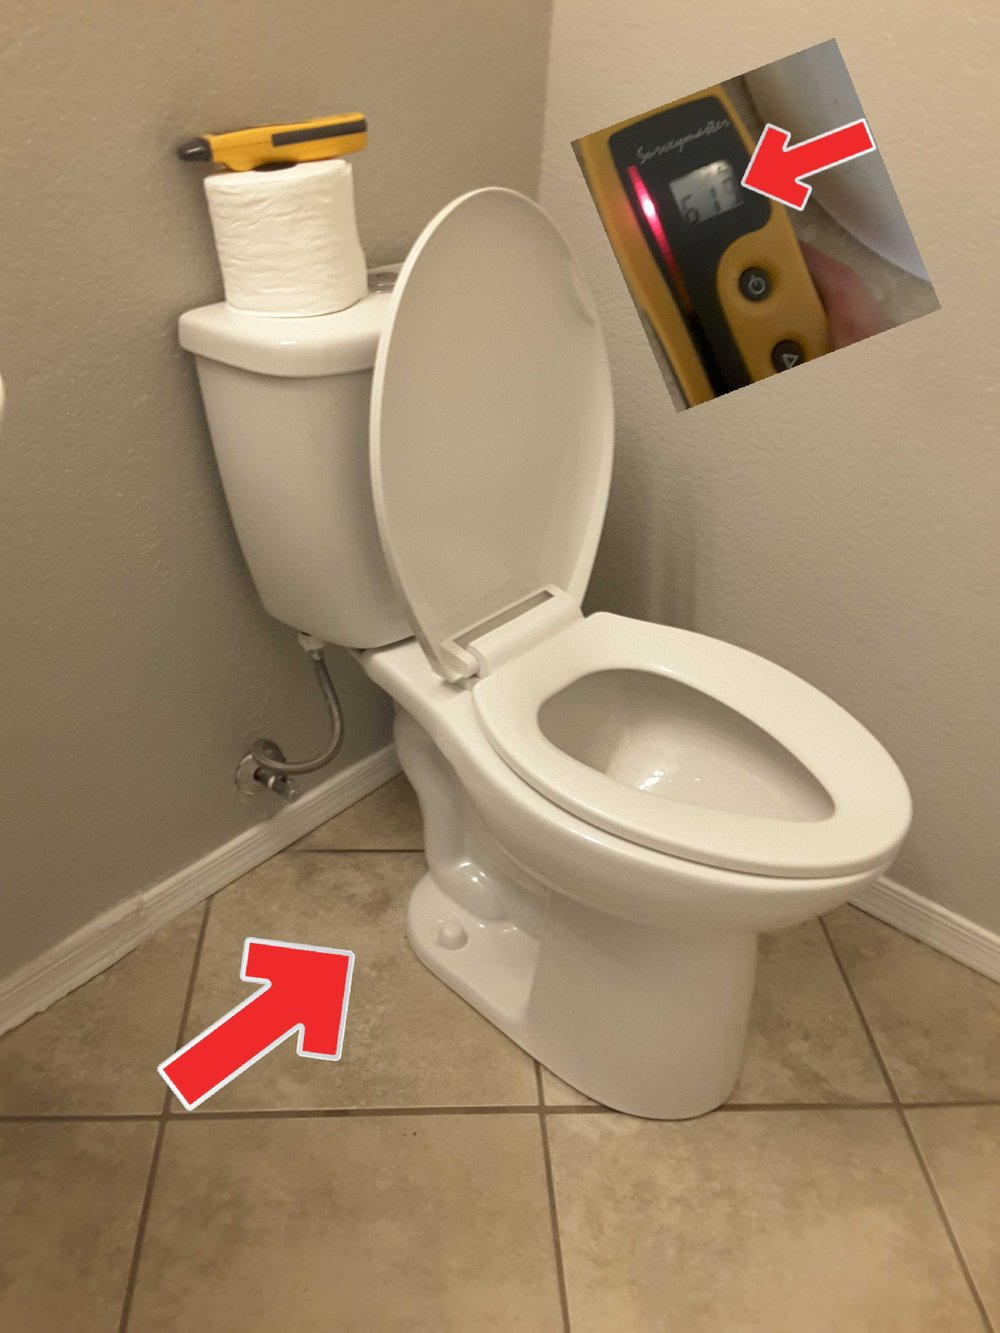 Loose/leaking toilets are a common issue in a 20 year old home. That's why I always check nearby floors with a moisture meter.